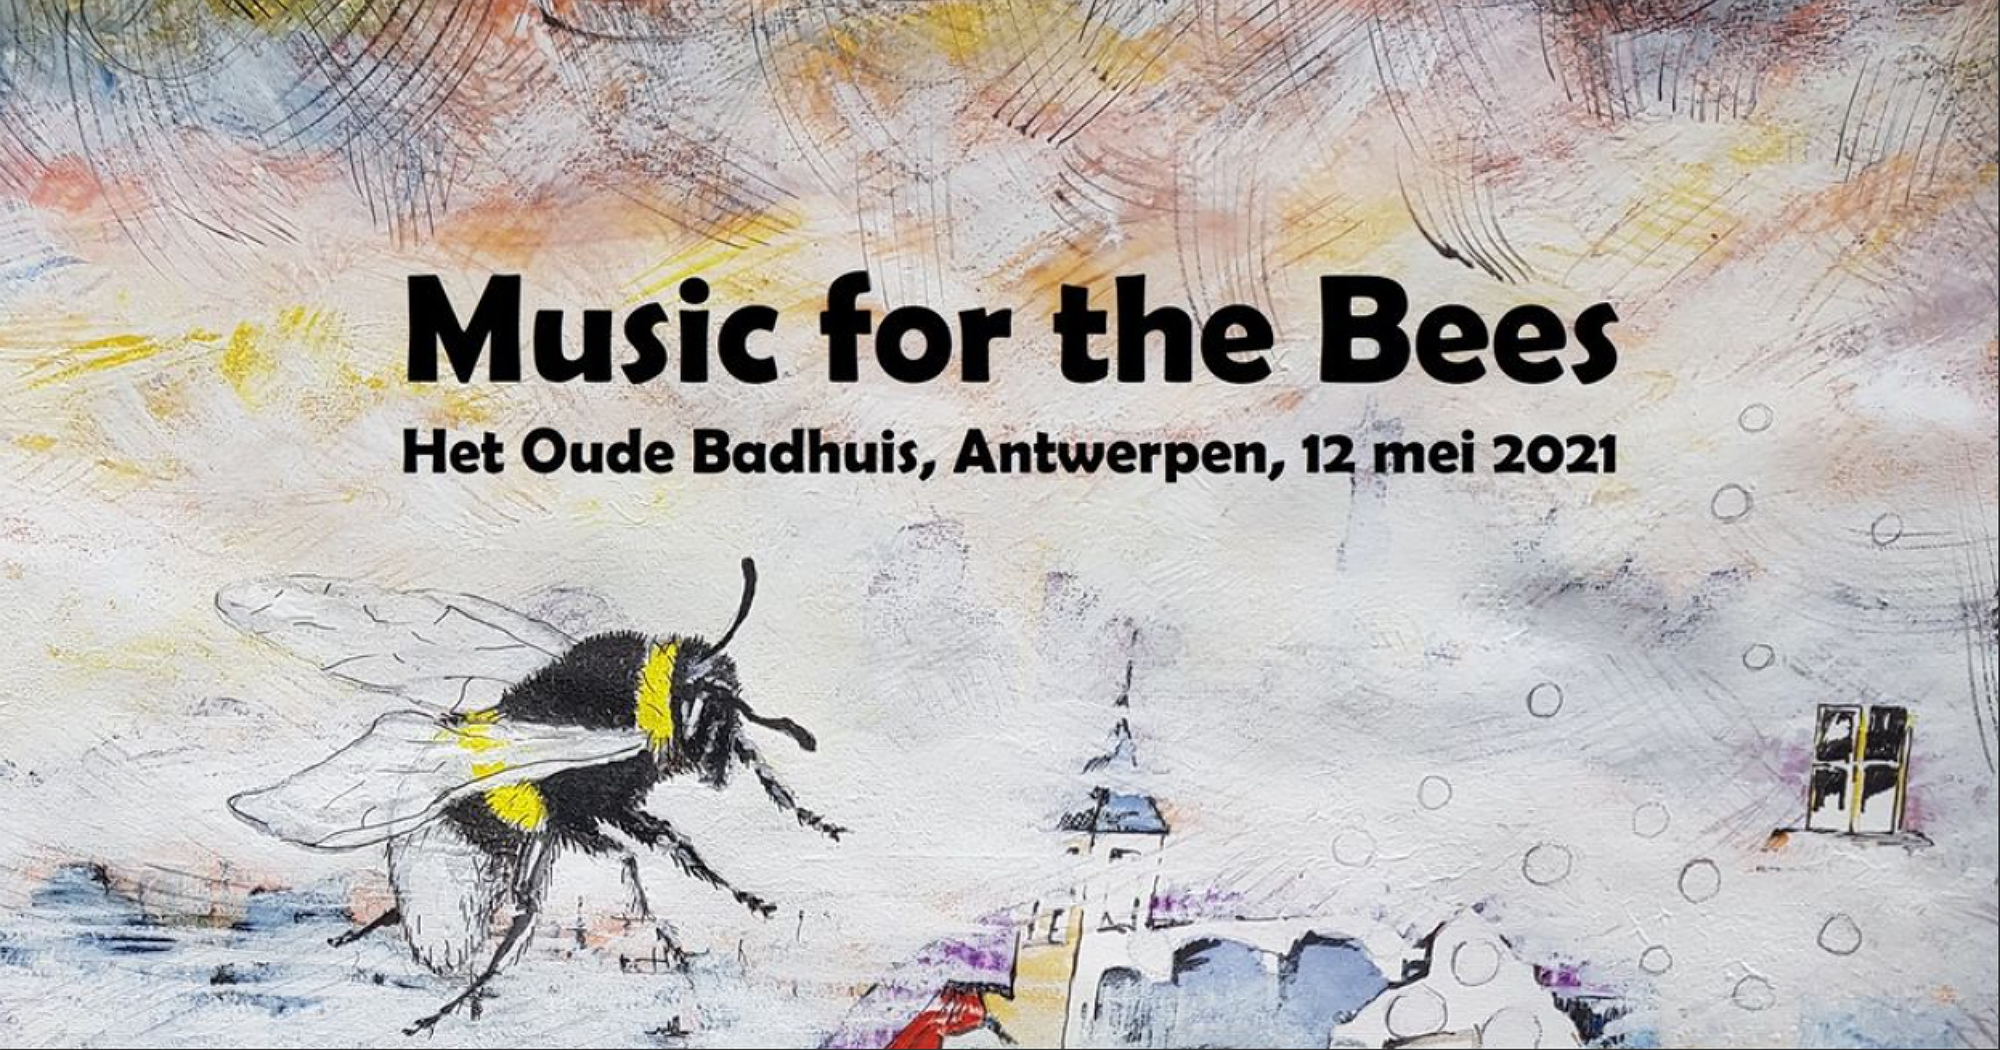 Music for the Bees